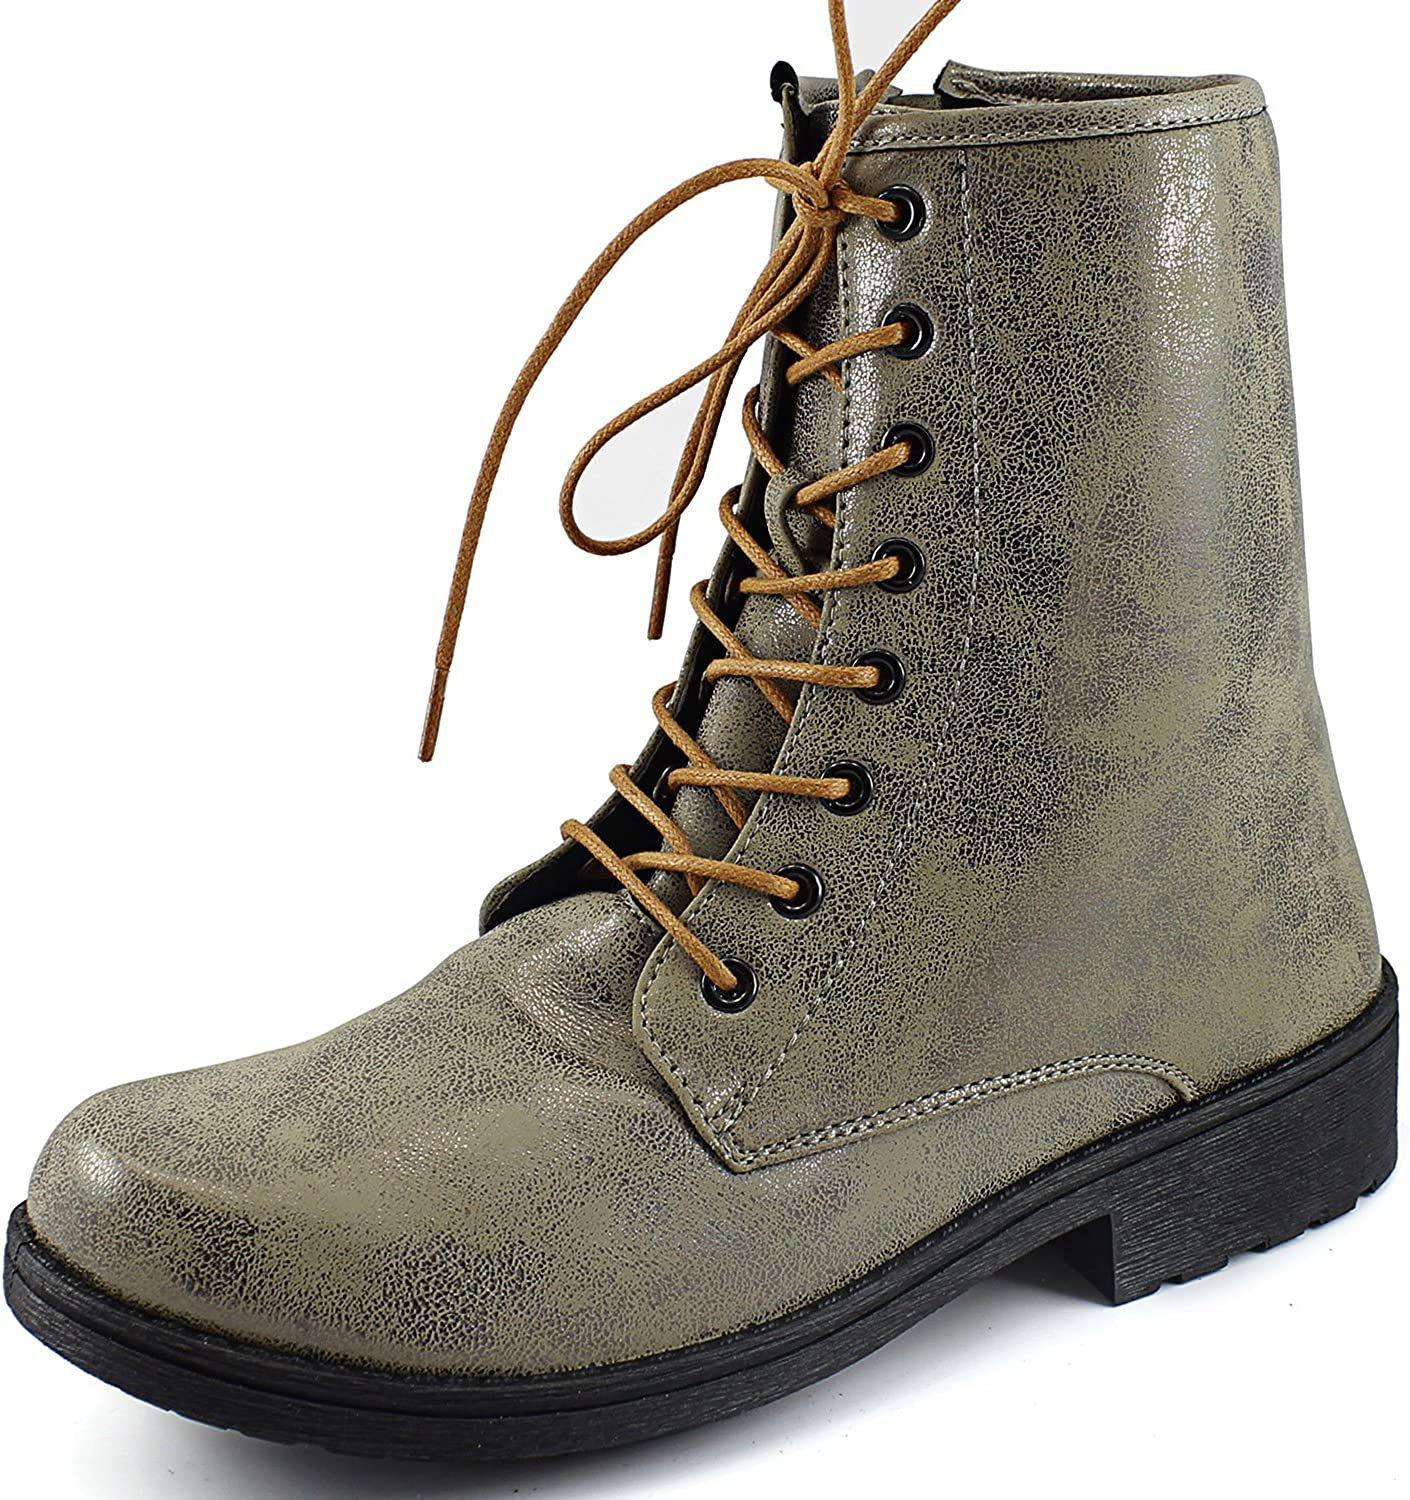 Women's Qupid Missile-04 Military Up Bootie Taupe Brz